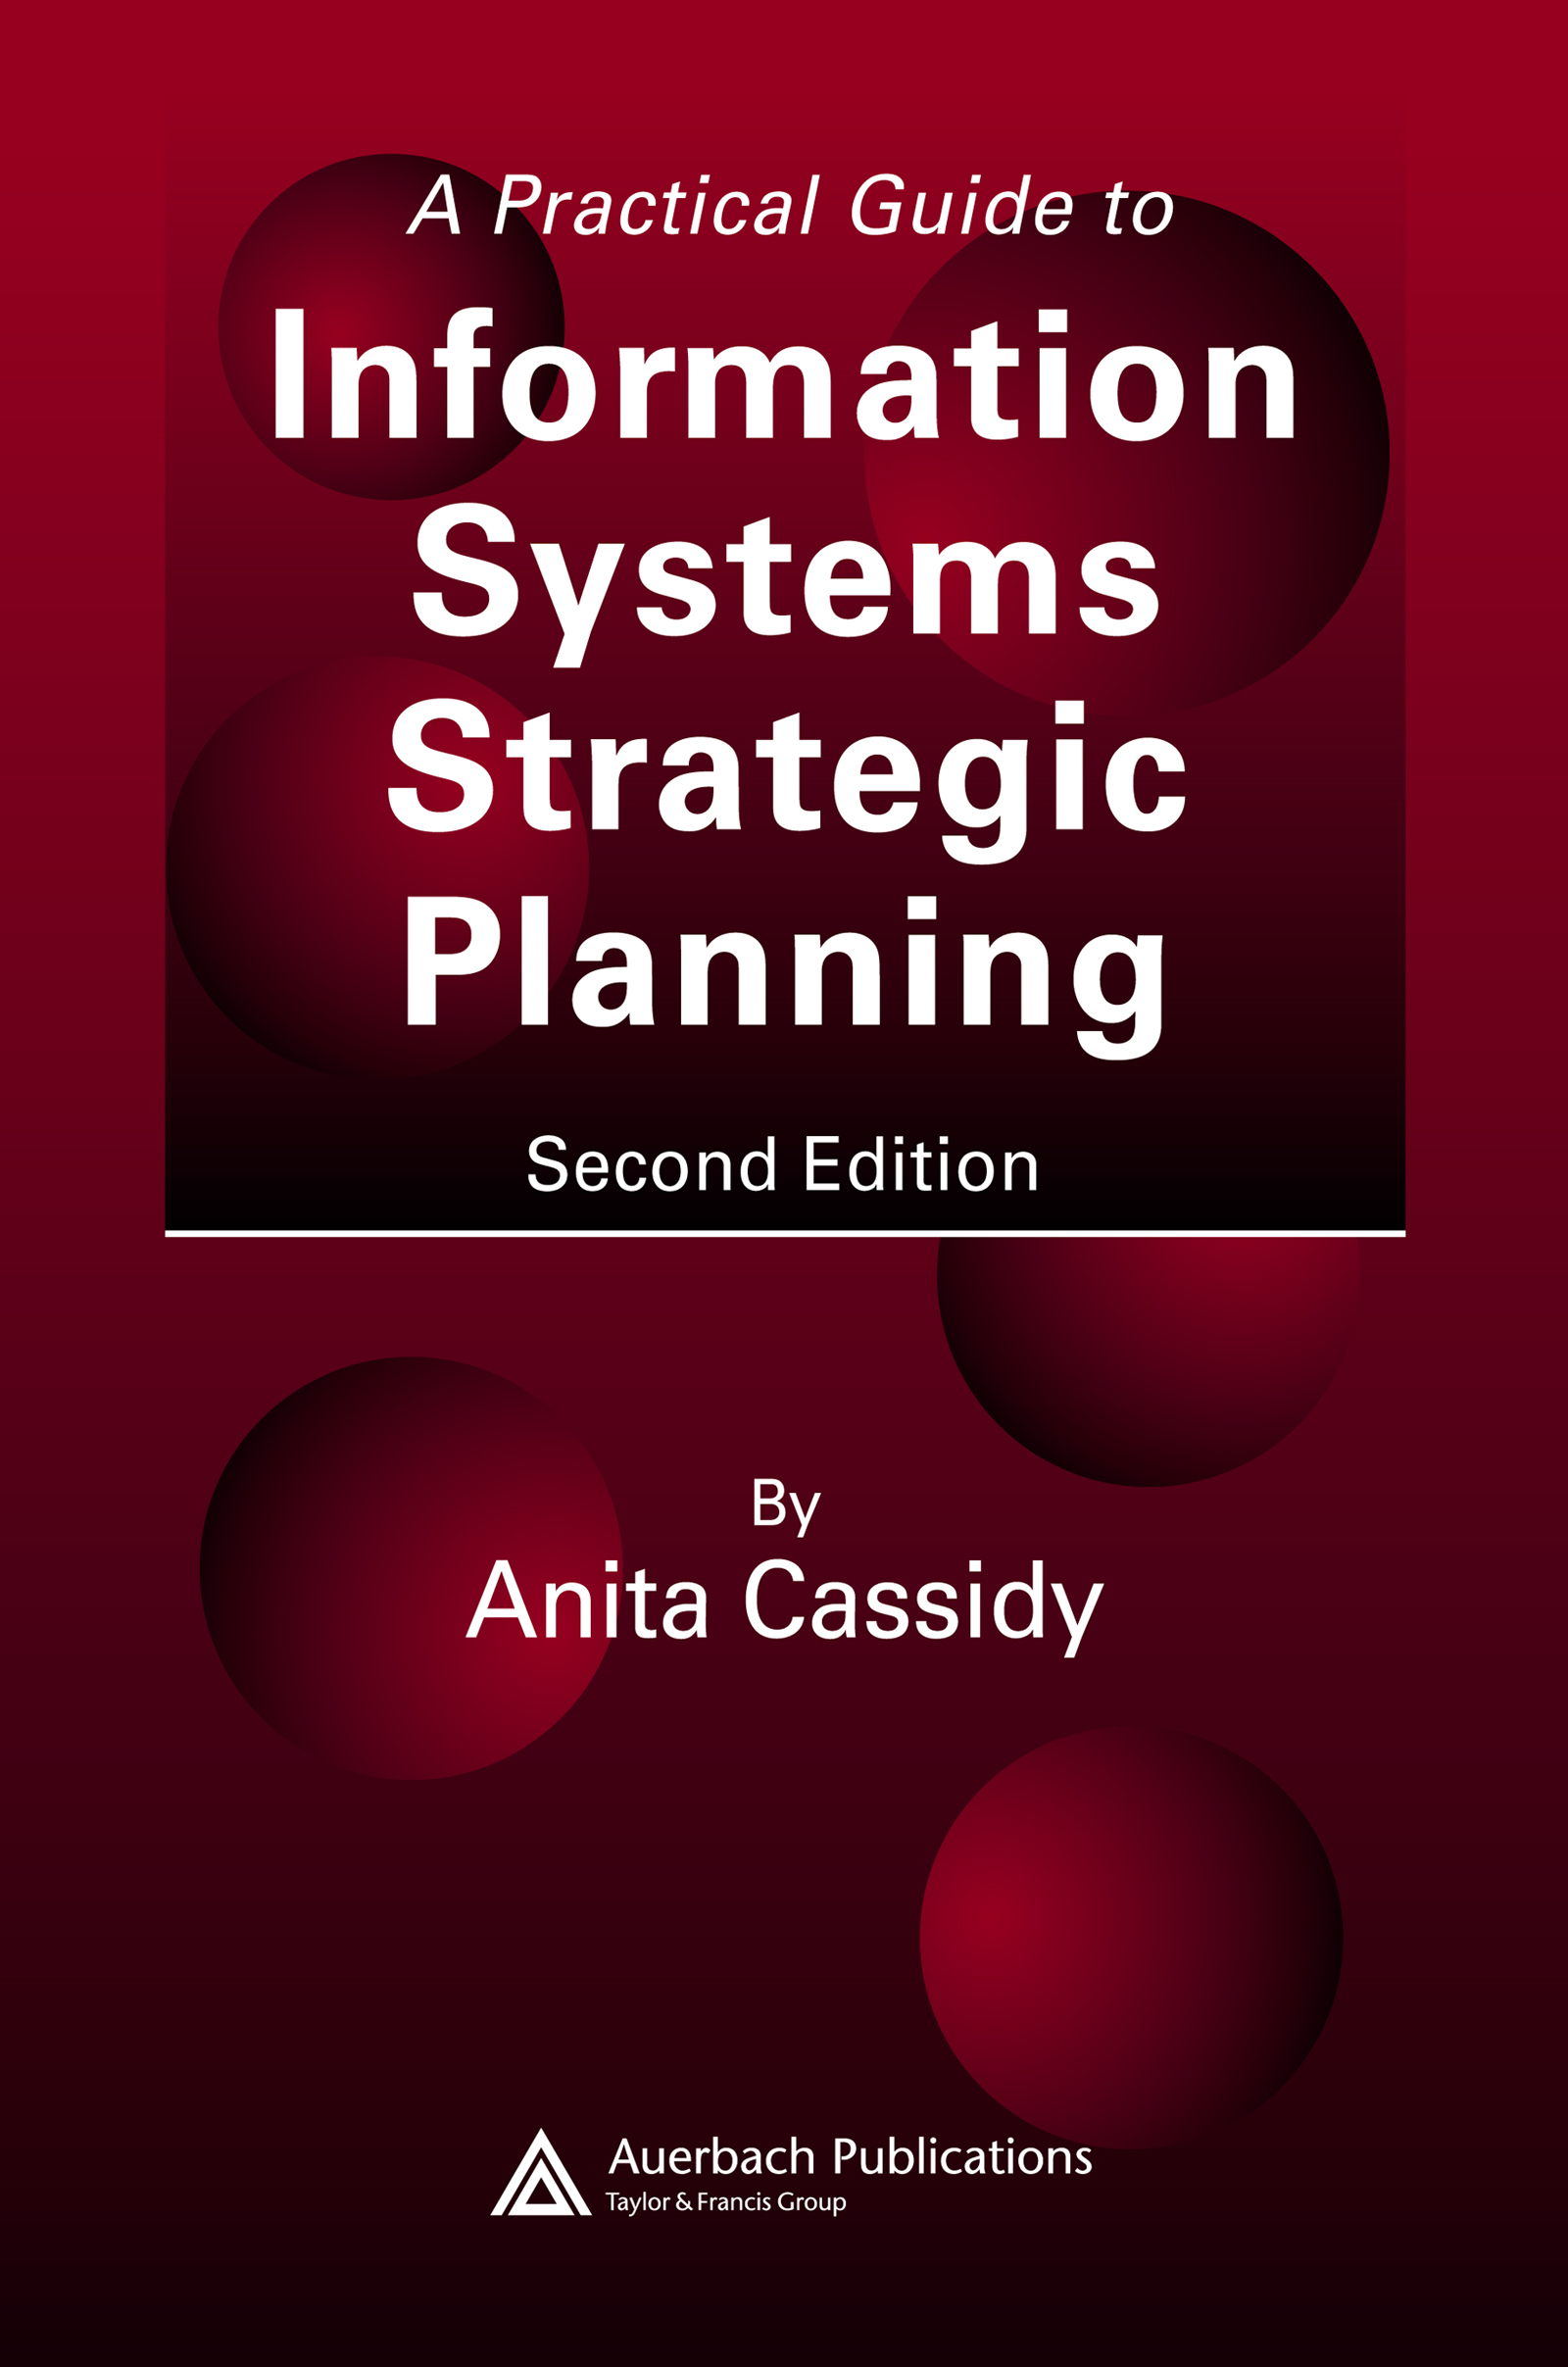 Download Ebook A Practical Guide to Information Systems Strategic Planning (2nd ed.) by Anita Cassidy Pdf